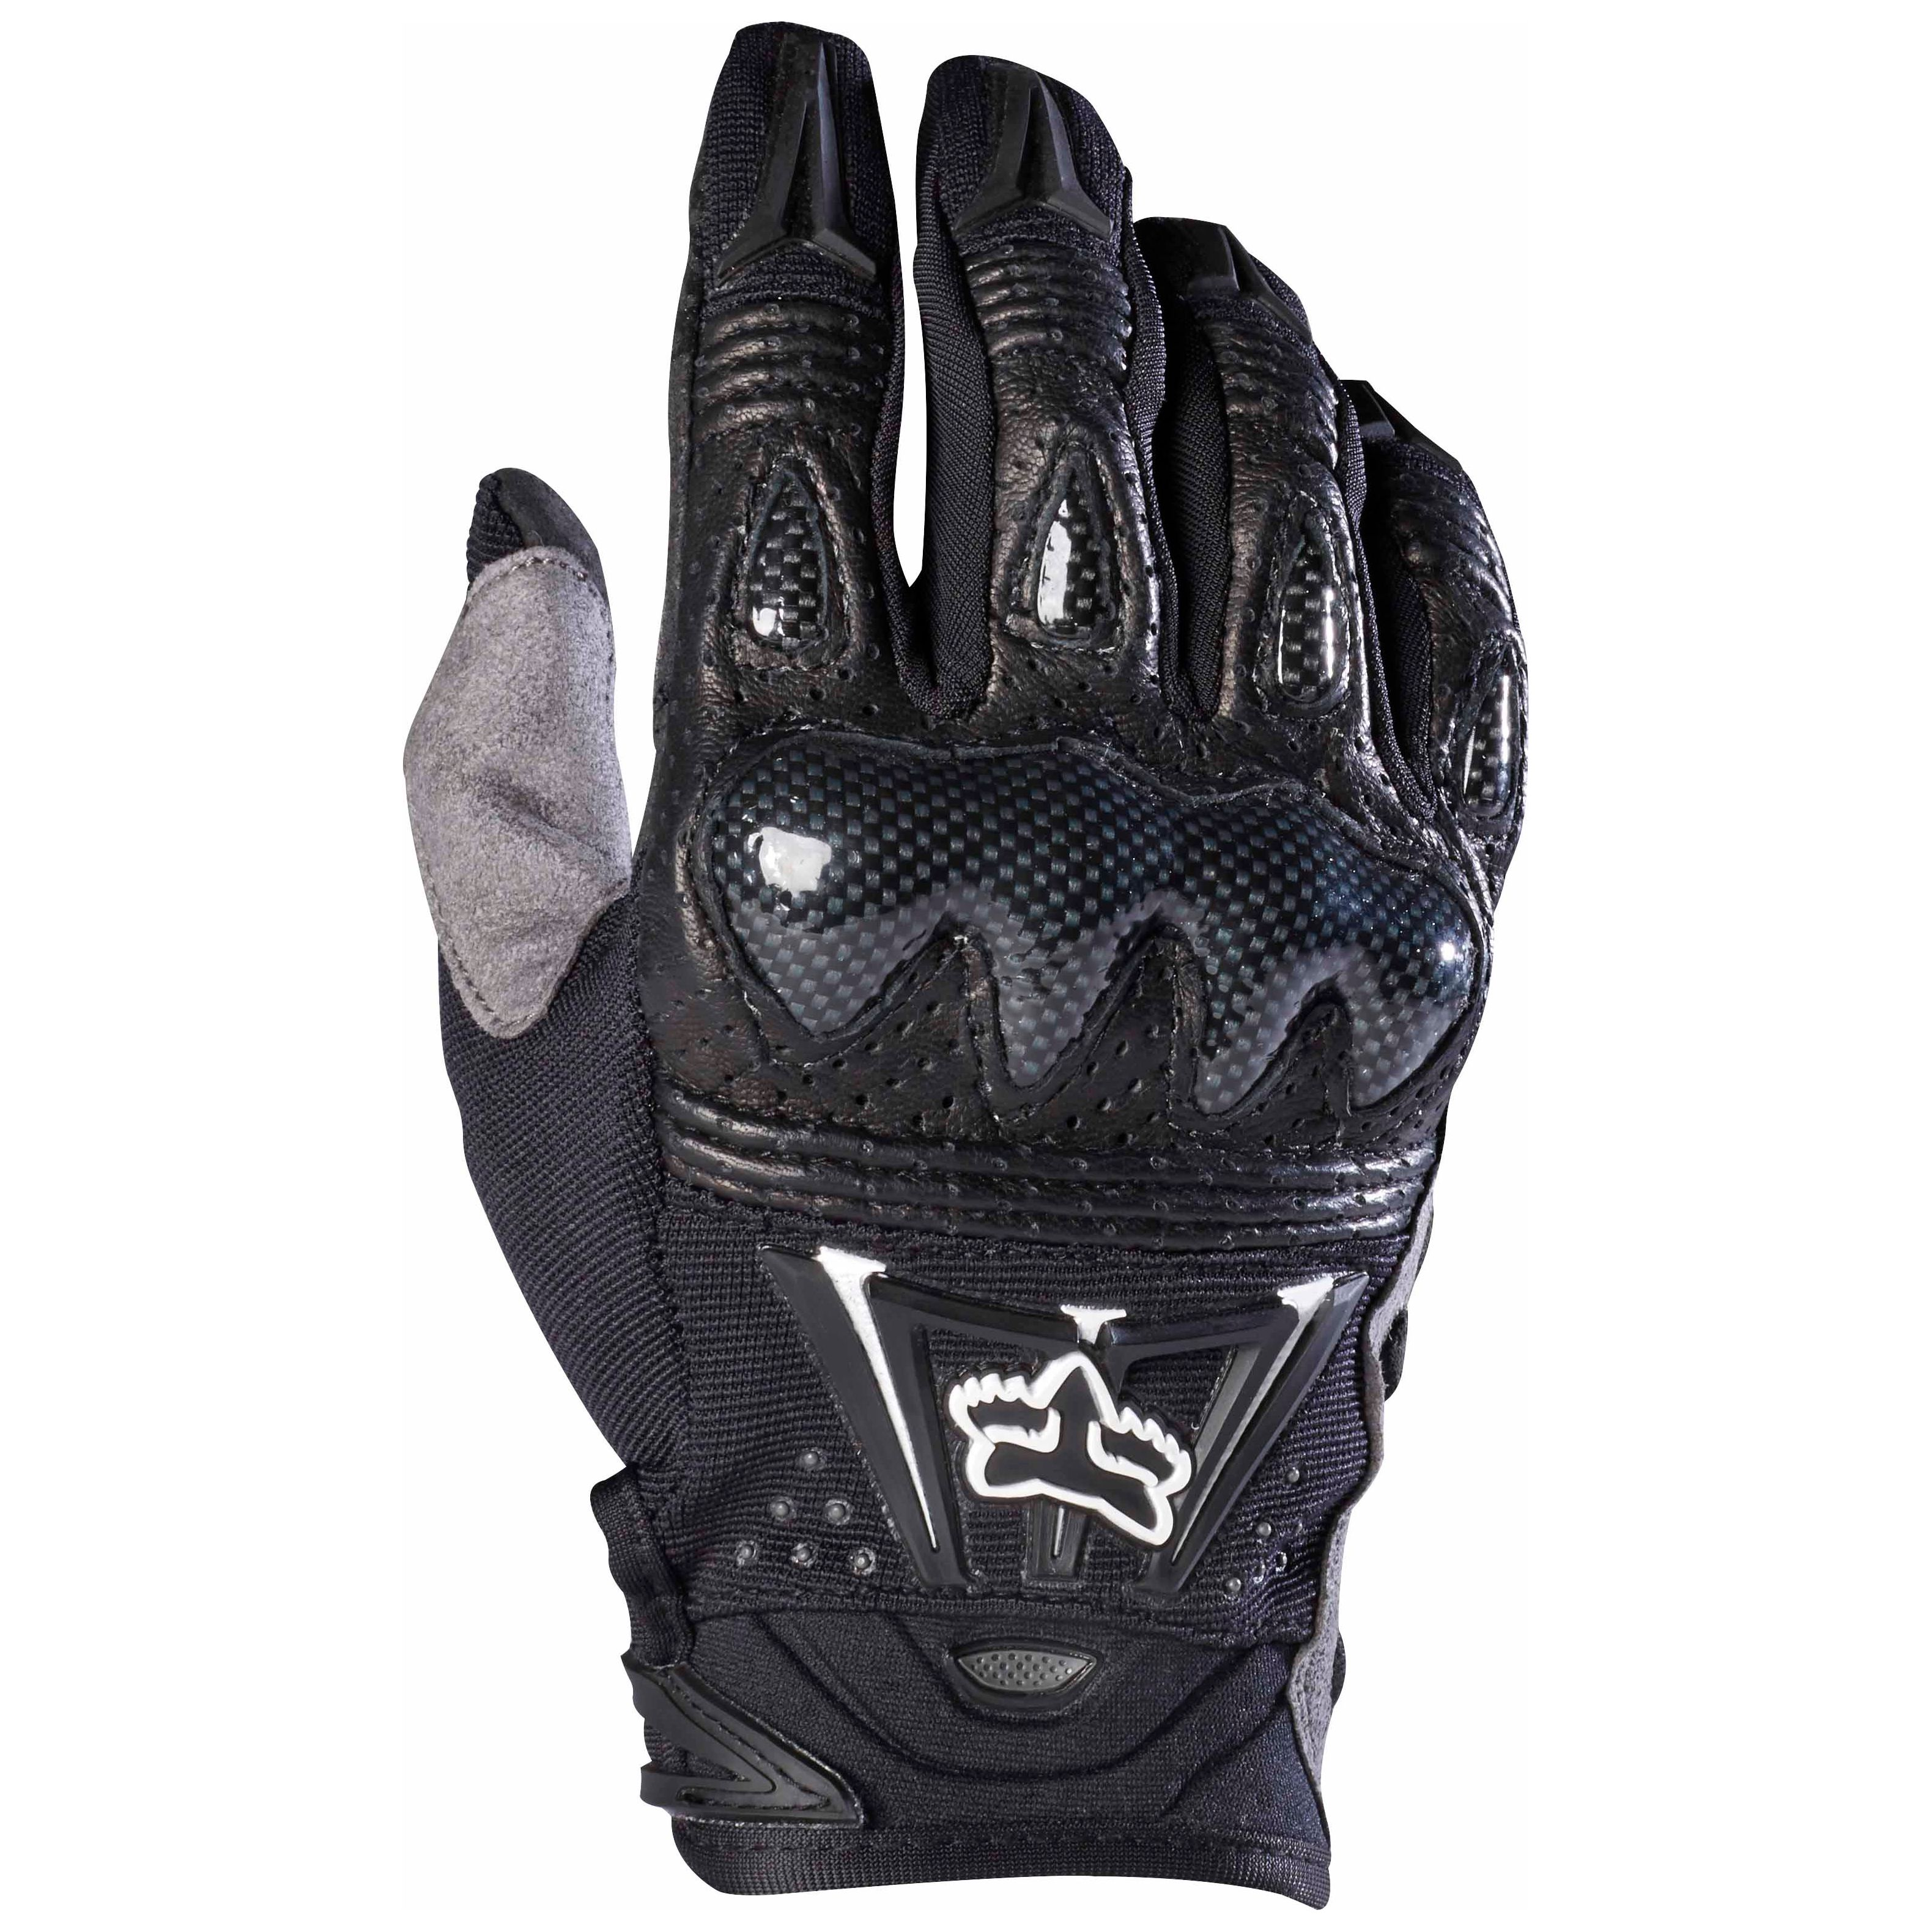 Guanti da cross Fox BOMBER GLOVES BLACK  2019